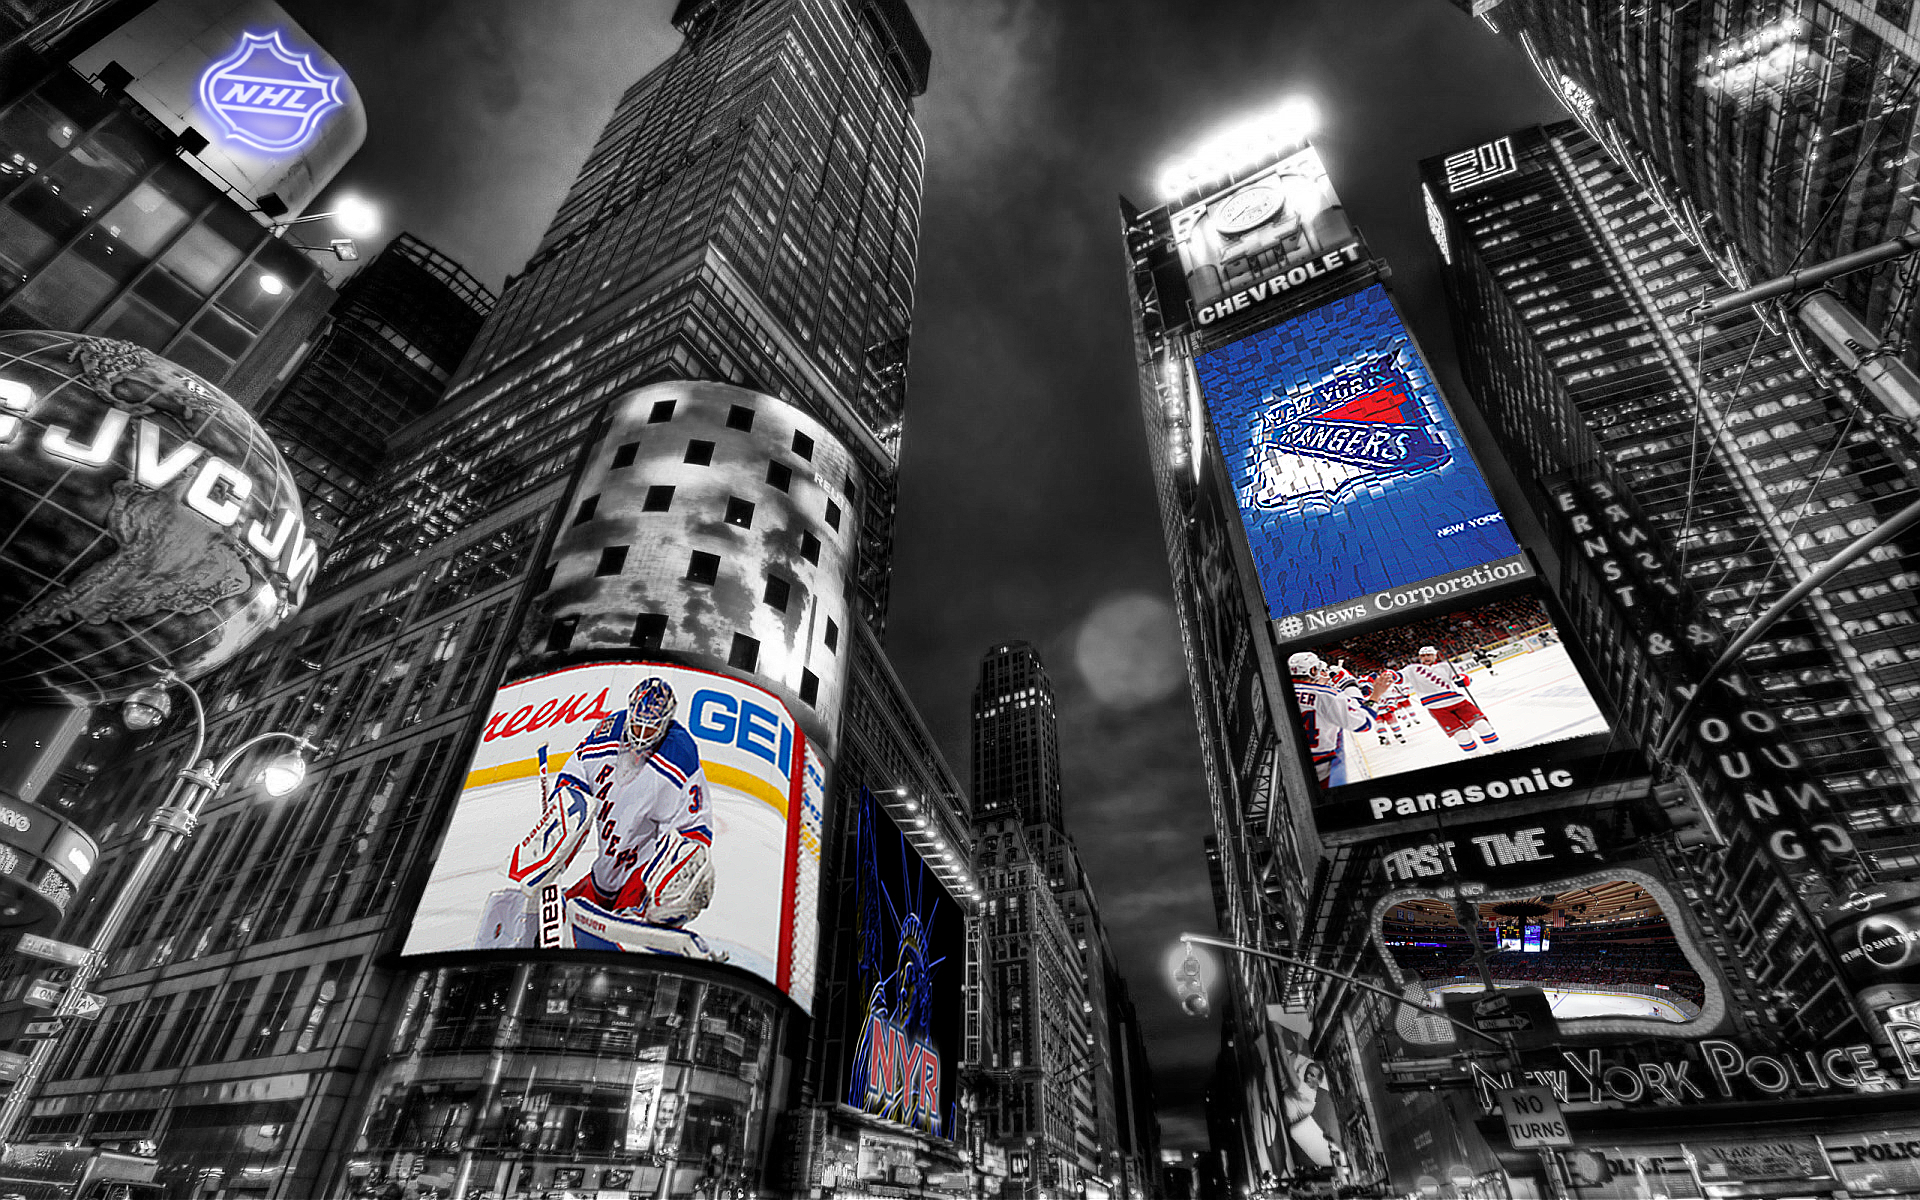 Nhl new york rangers times square wallpaper by realyze on deviantart nhl new york rangers times square wallpaper by realyze sciox Choice Image